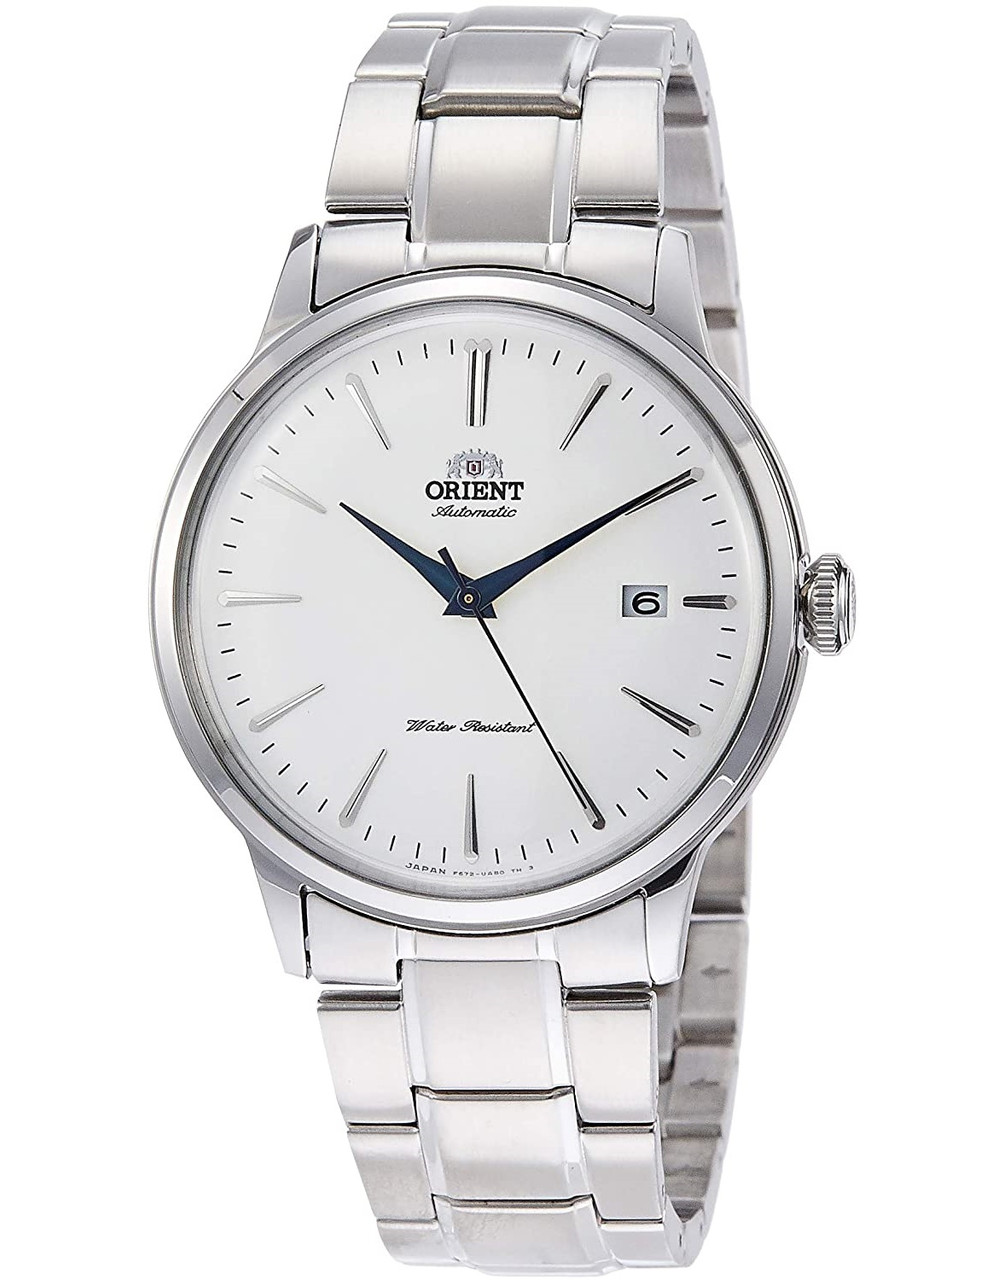 Orient Bambino Dress Made In Japan RN-AC0001S